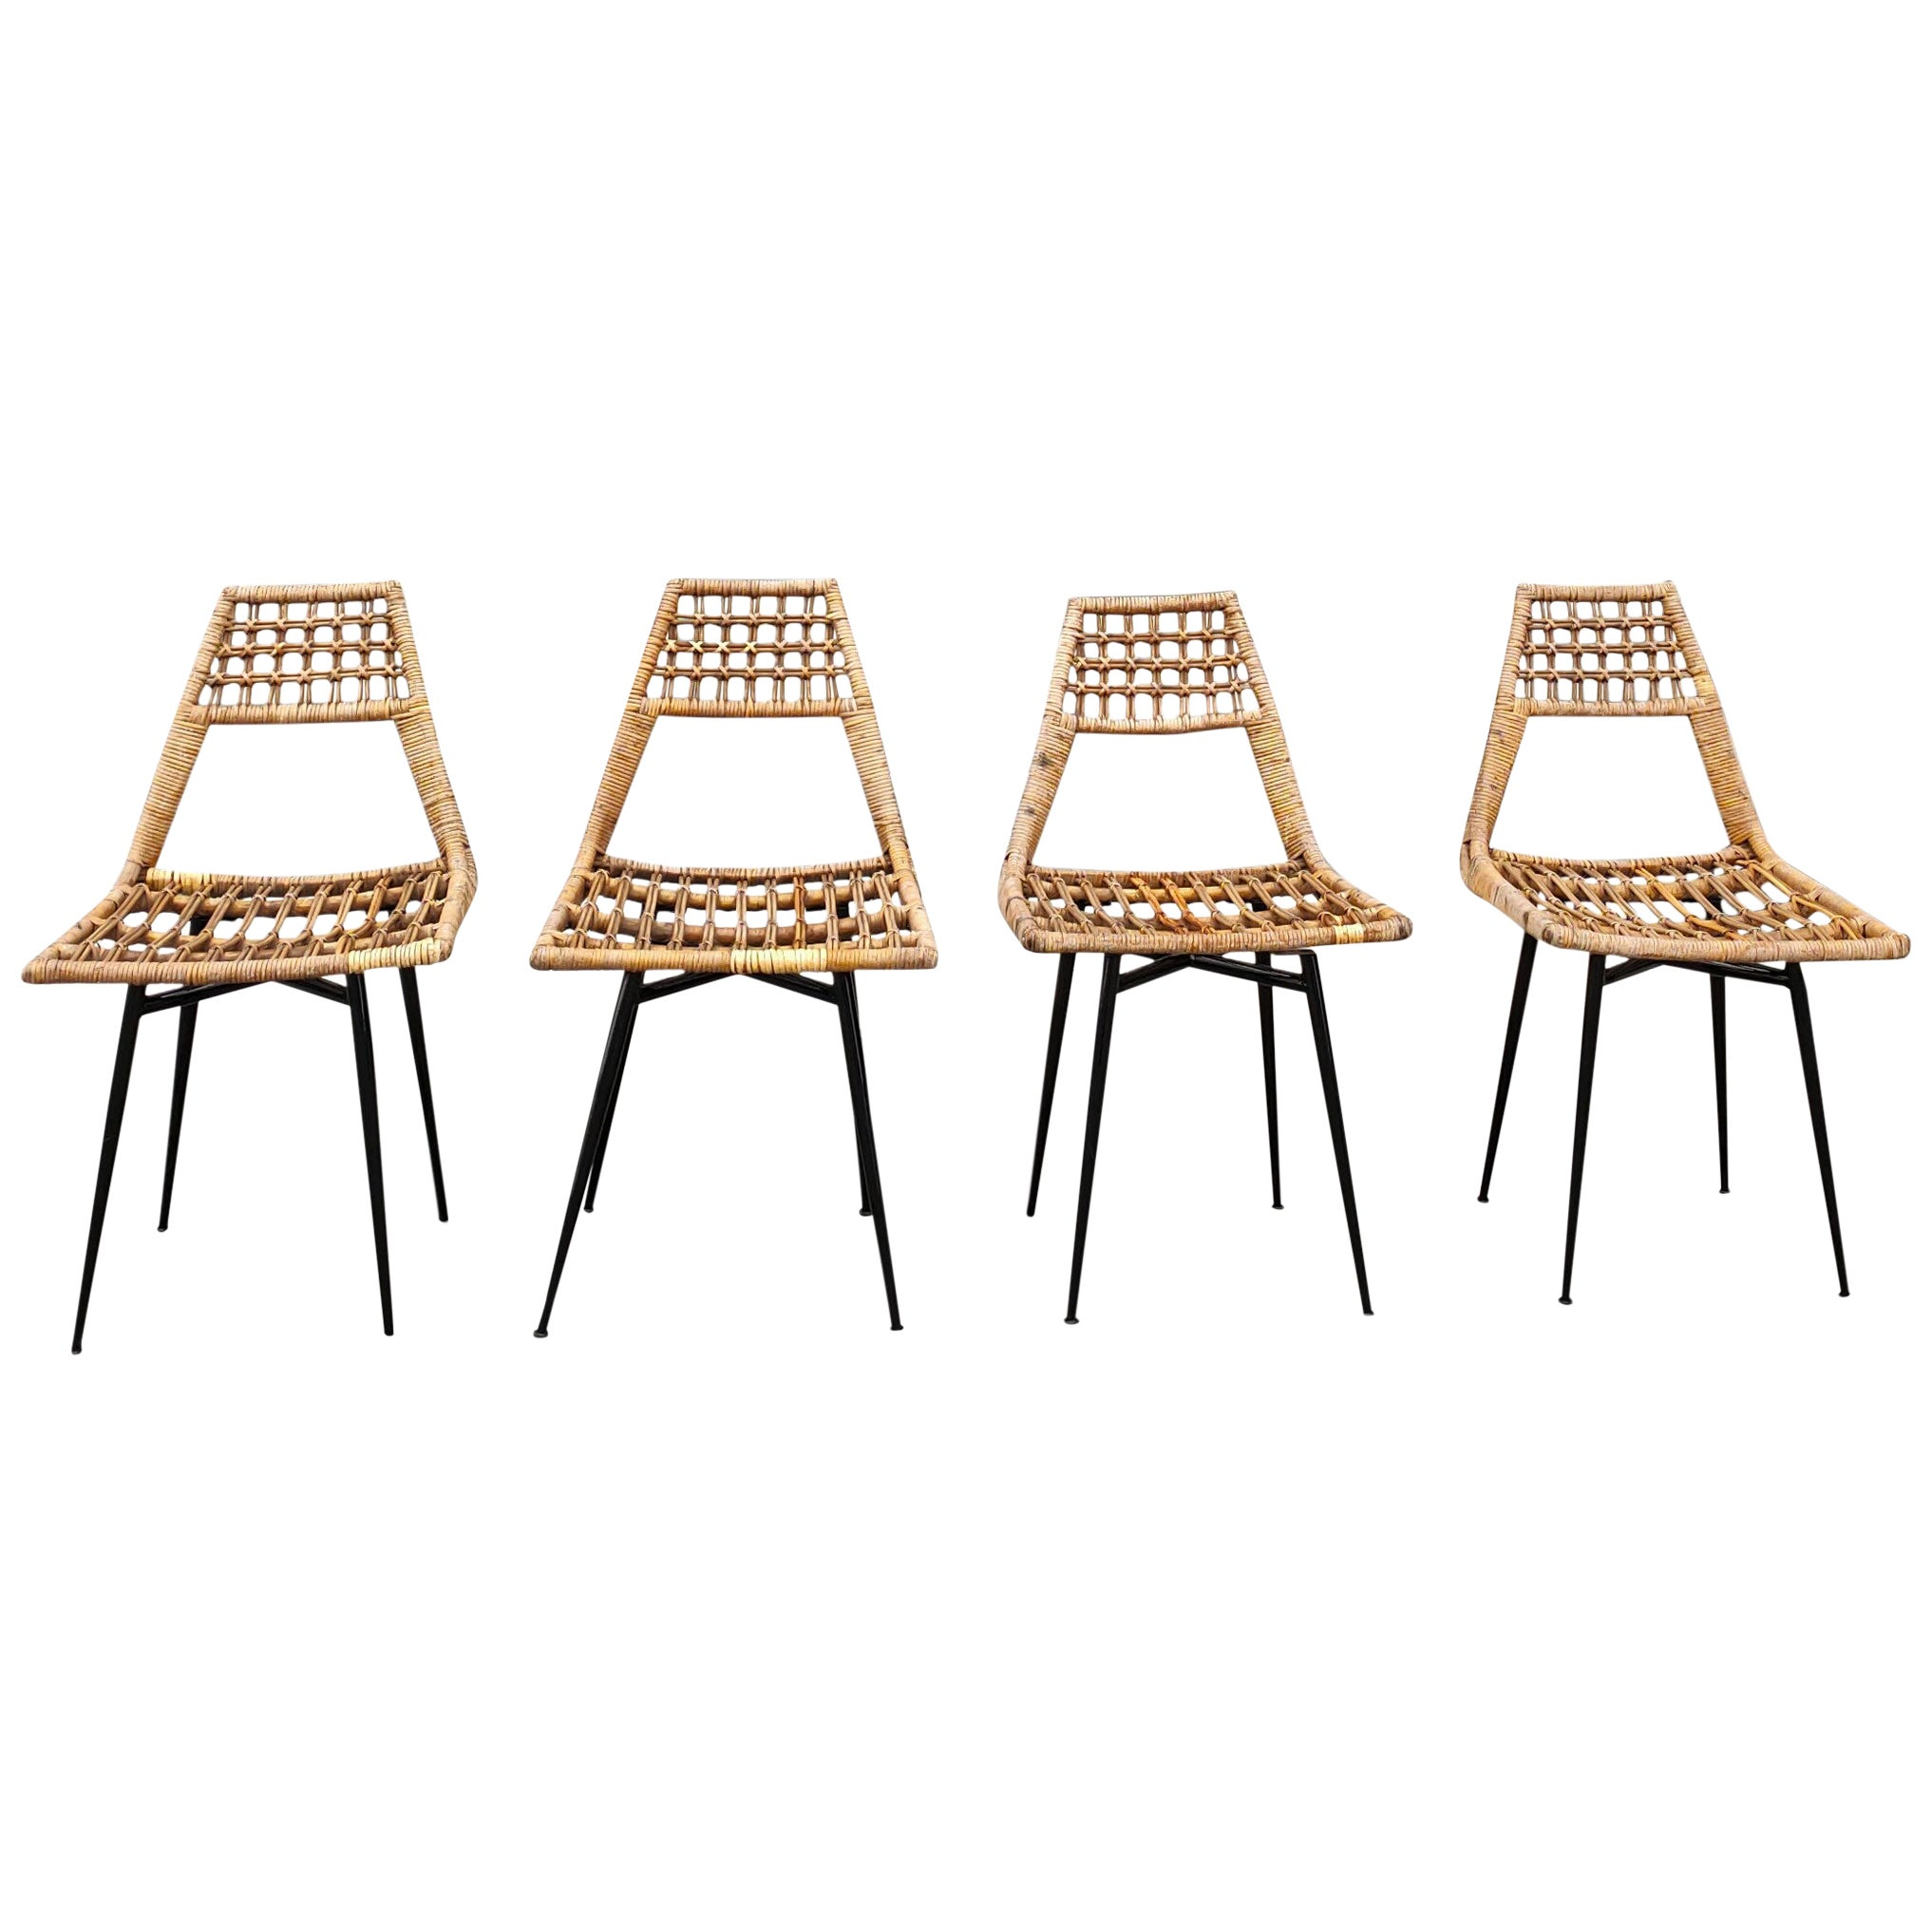 Set of Four Midcentury Basket Rattan Chairs, Italy, 1960s